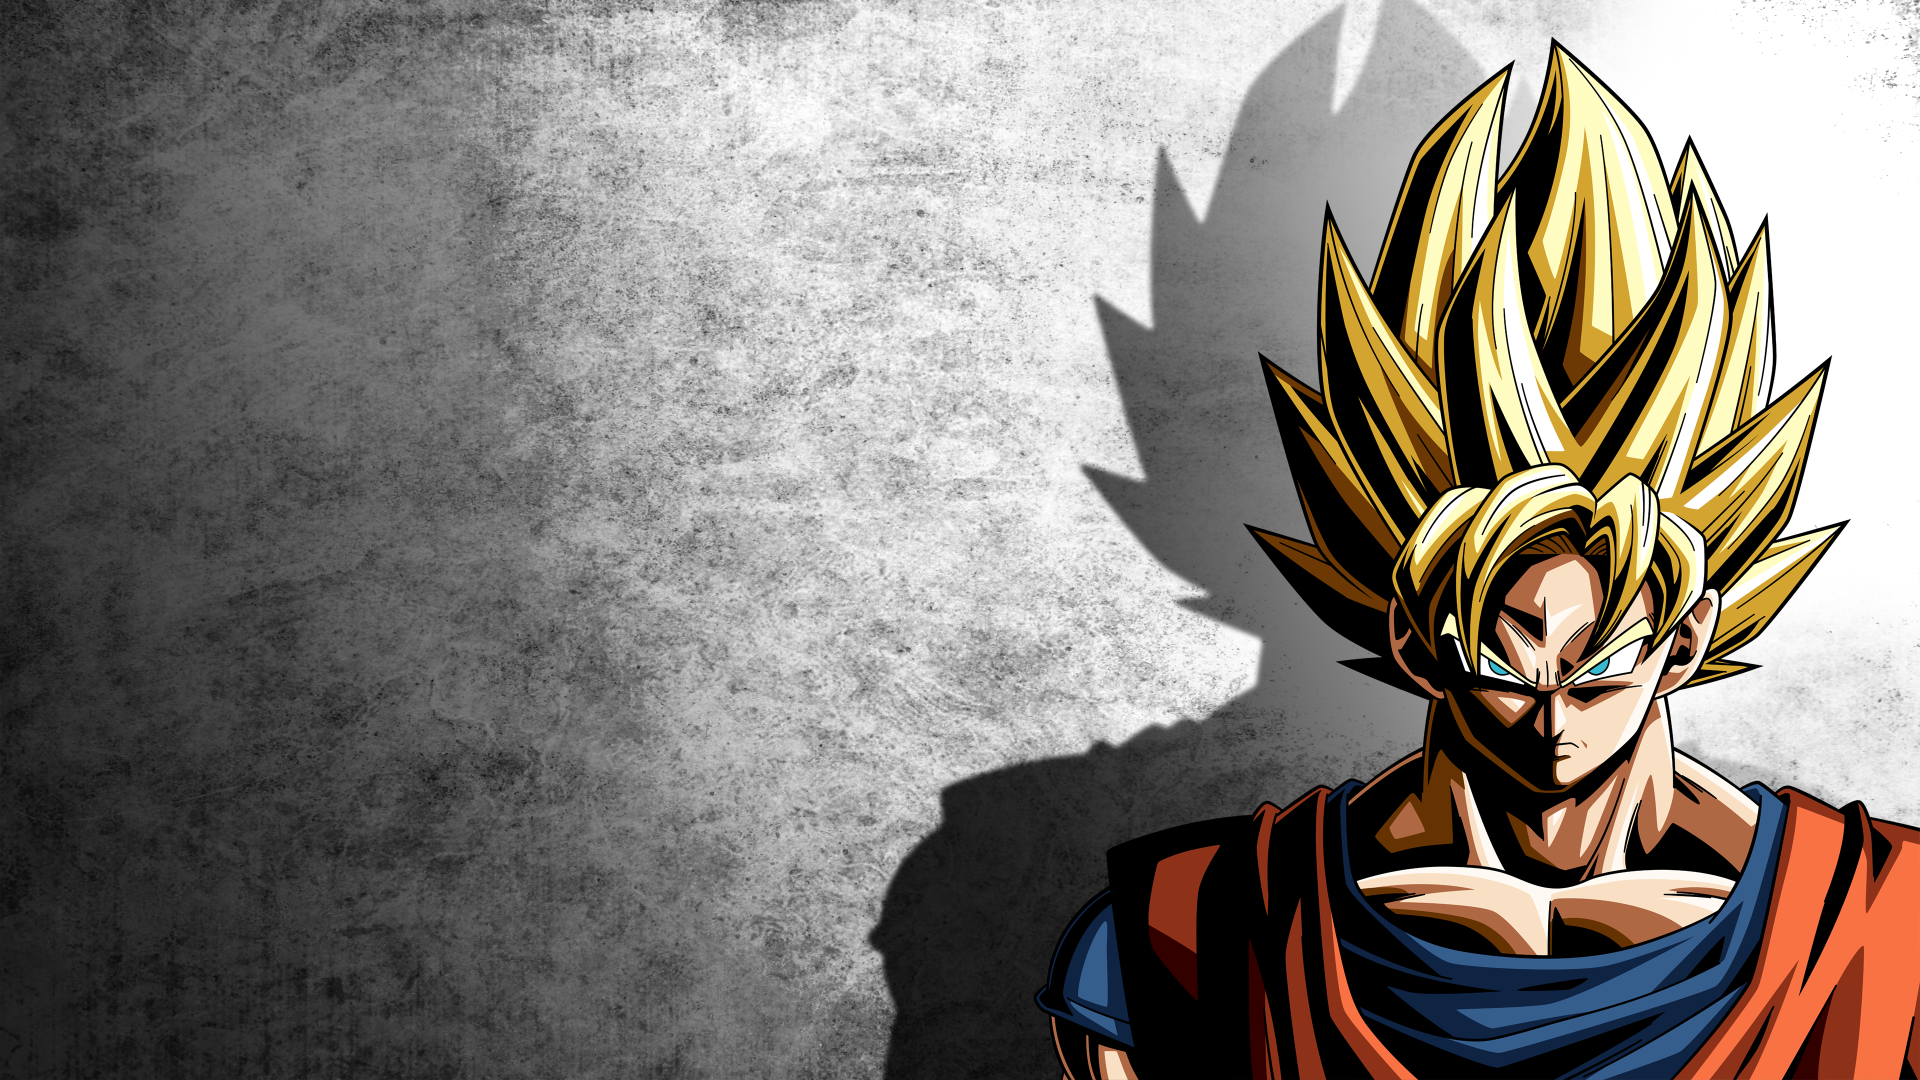 Anime - Dragon Ball Z  Goku Dragon Ball Wallpaper